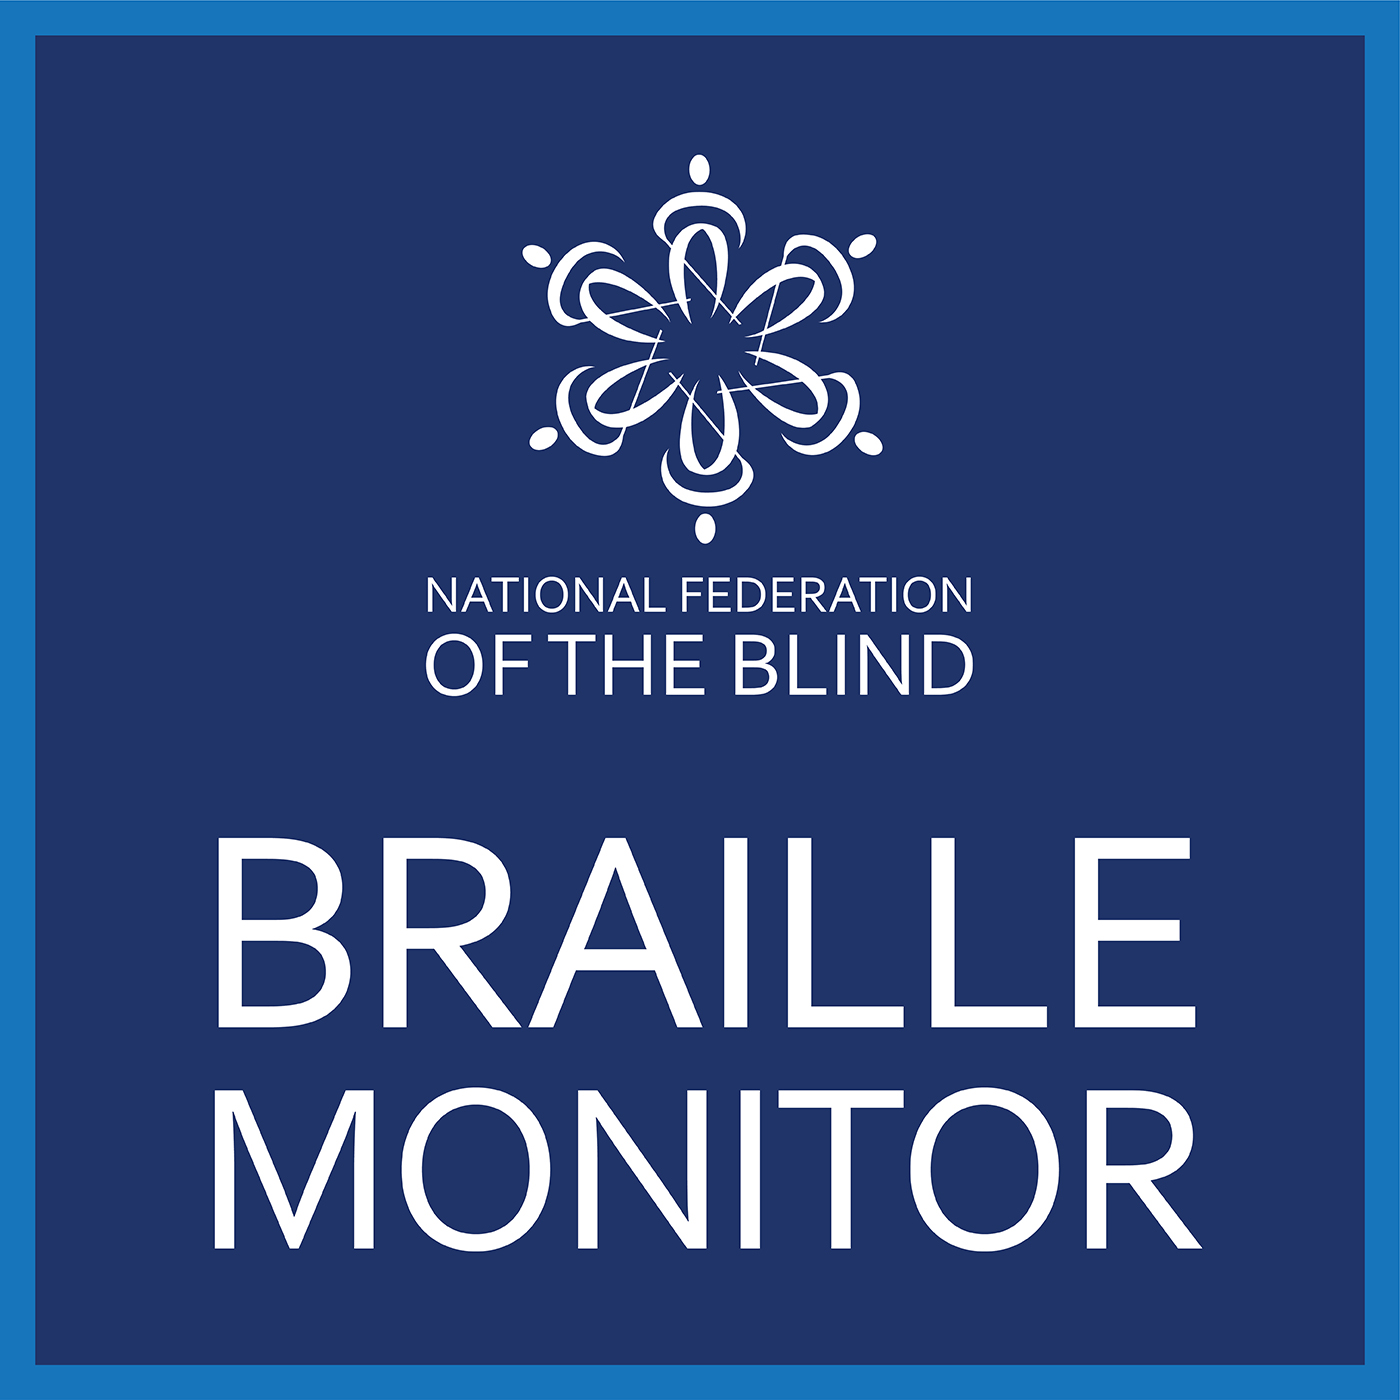 National Federation of the Blind - Braille Monitor